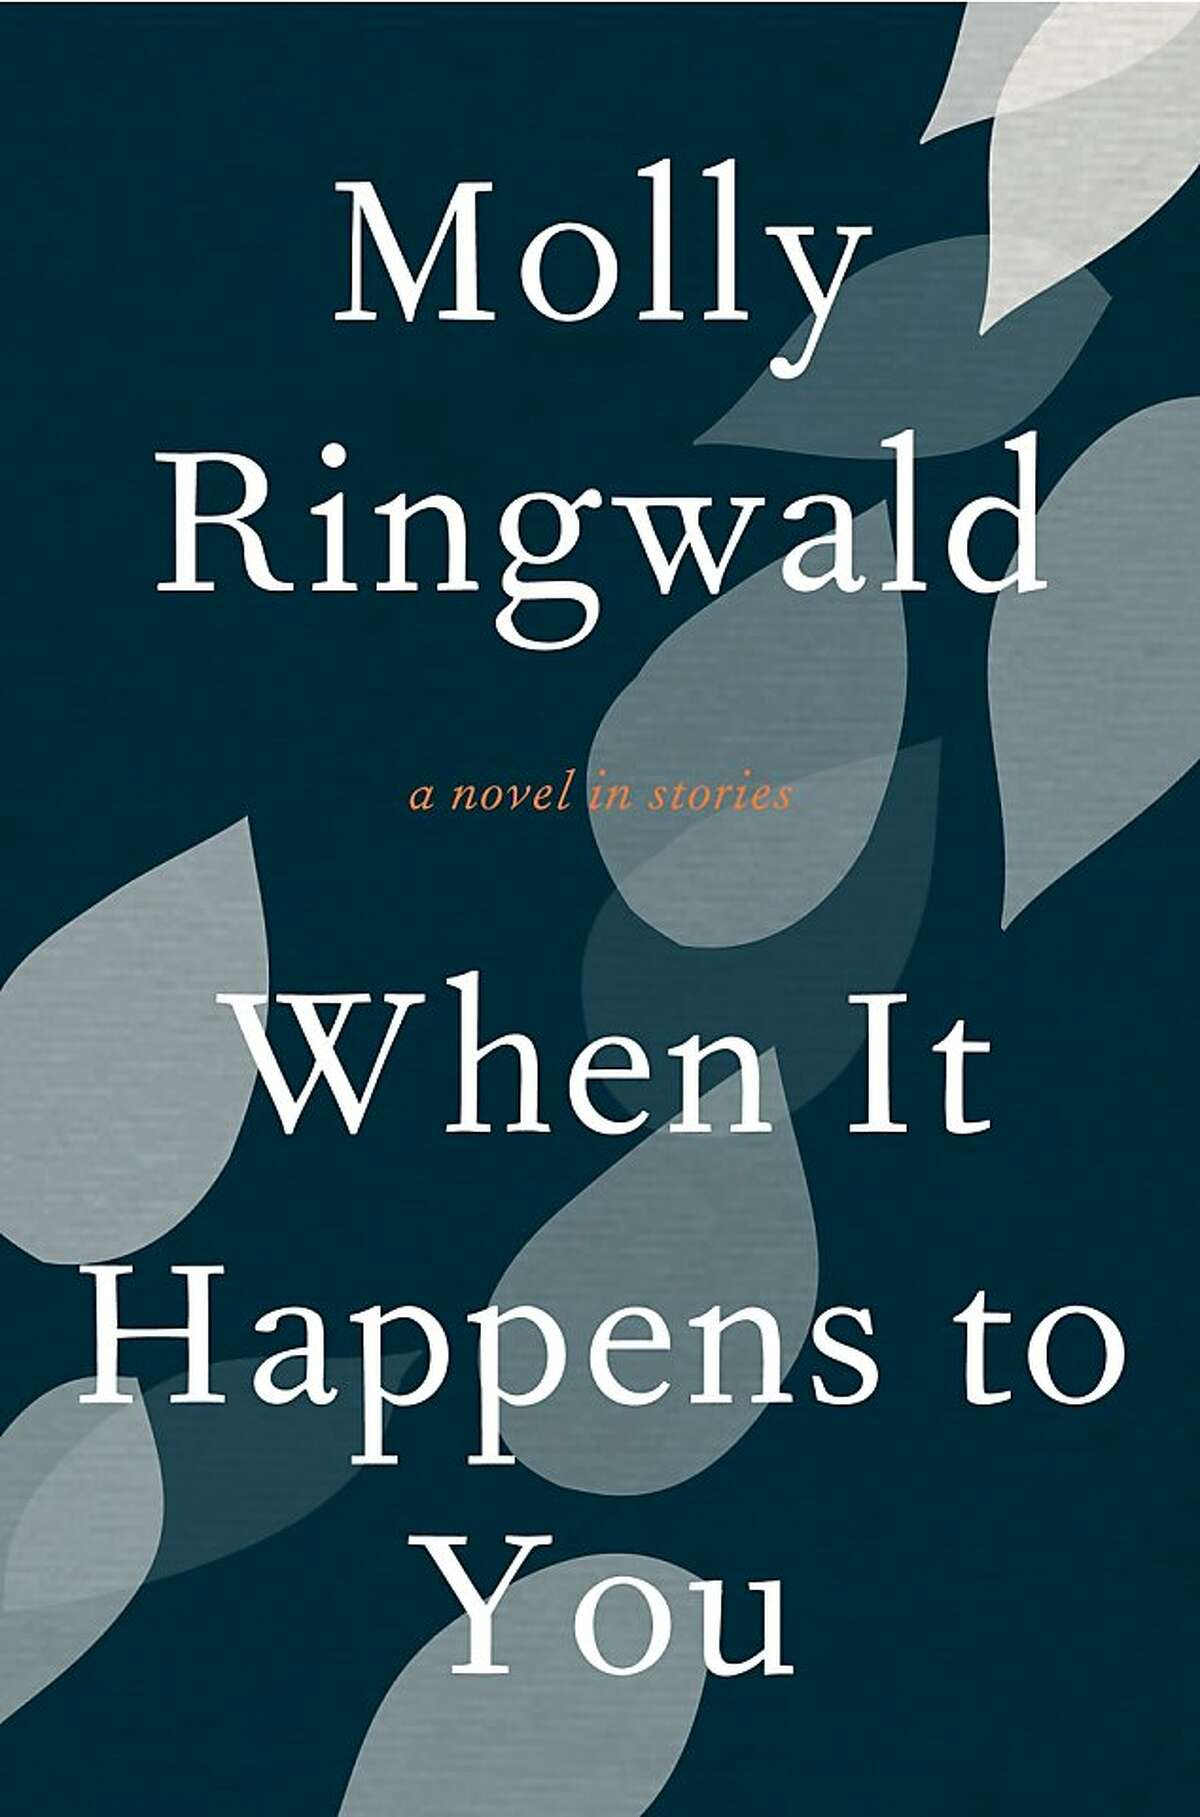 Teen icon Molly Ringwald's debut novel is